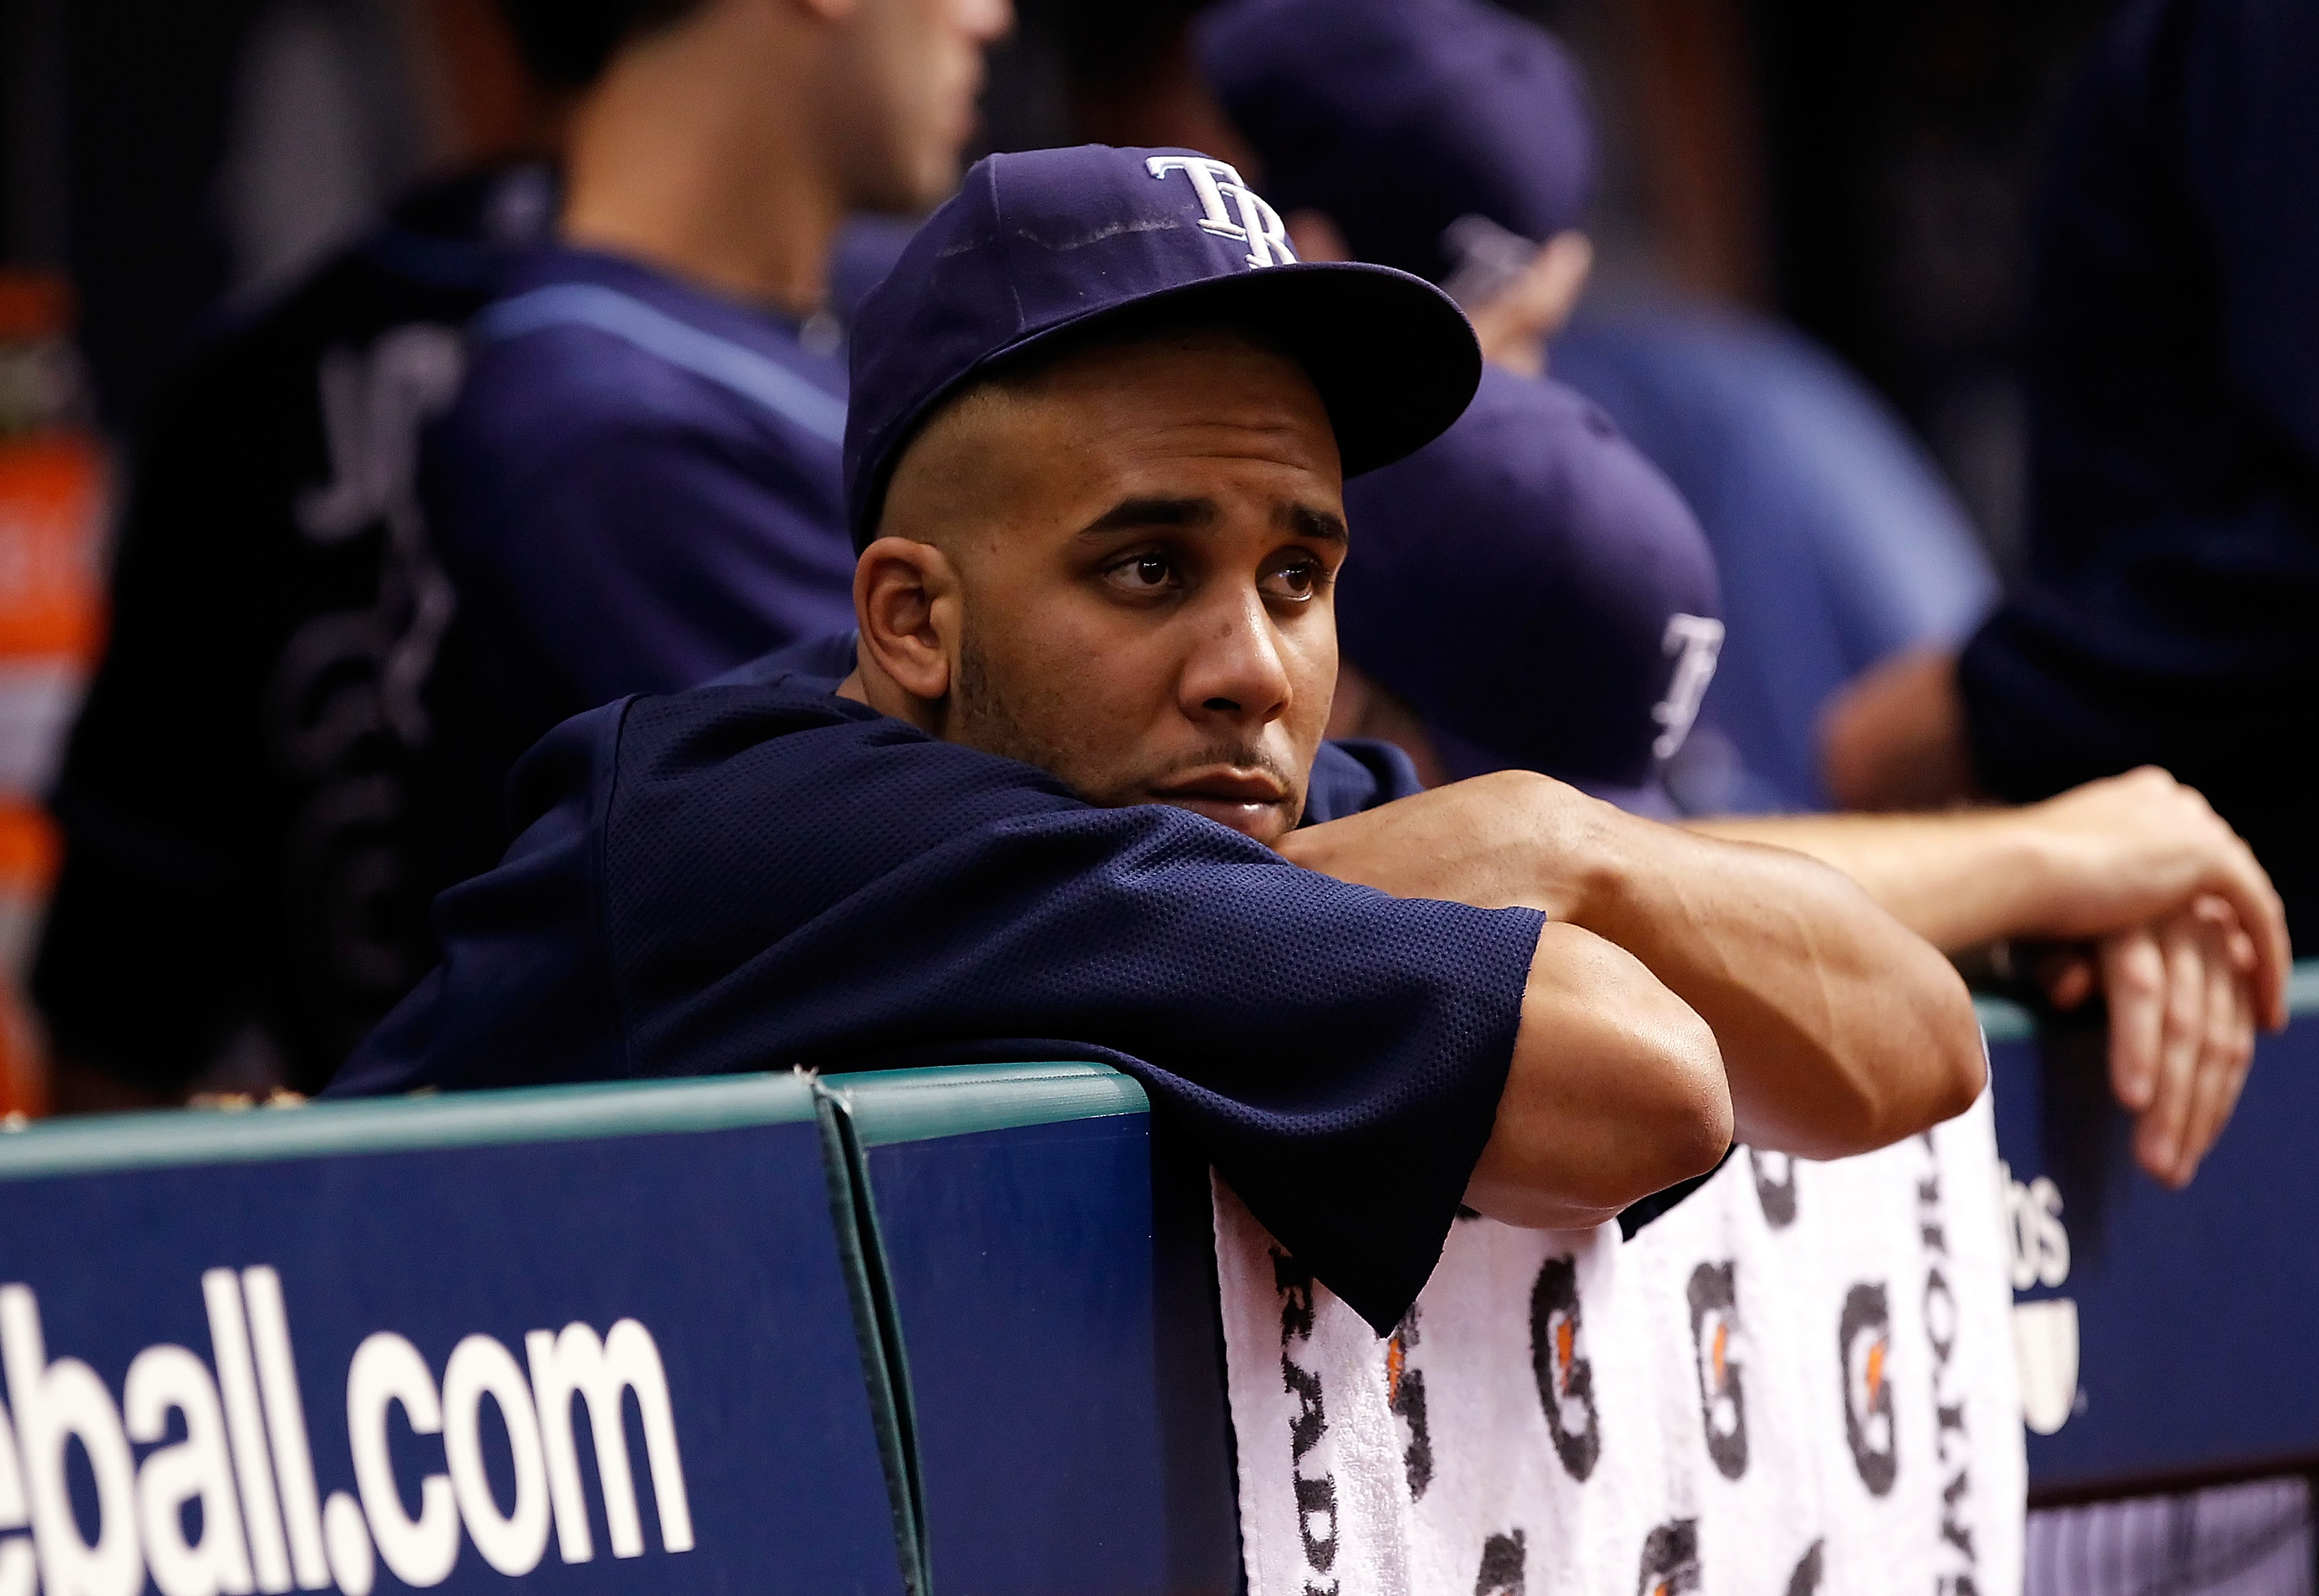 ST. PETERSBURG, FL - OCTOBER 12:  Pitcher David Price #14 of the Tampa Bay Rays watches his team against the Texas Rangers during Game 5 of the ALDS at Tropicana Field on October 12, 2010 in St. Petersburg, Florida.  (Photo by J. Meric/Getty Images)